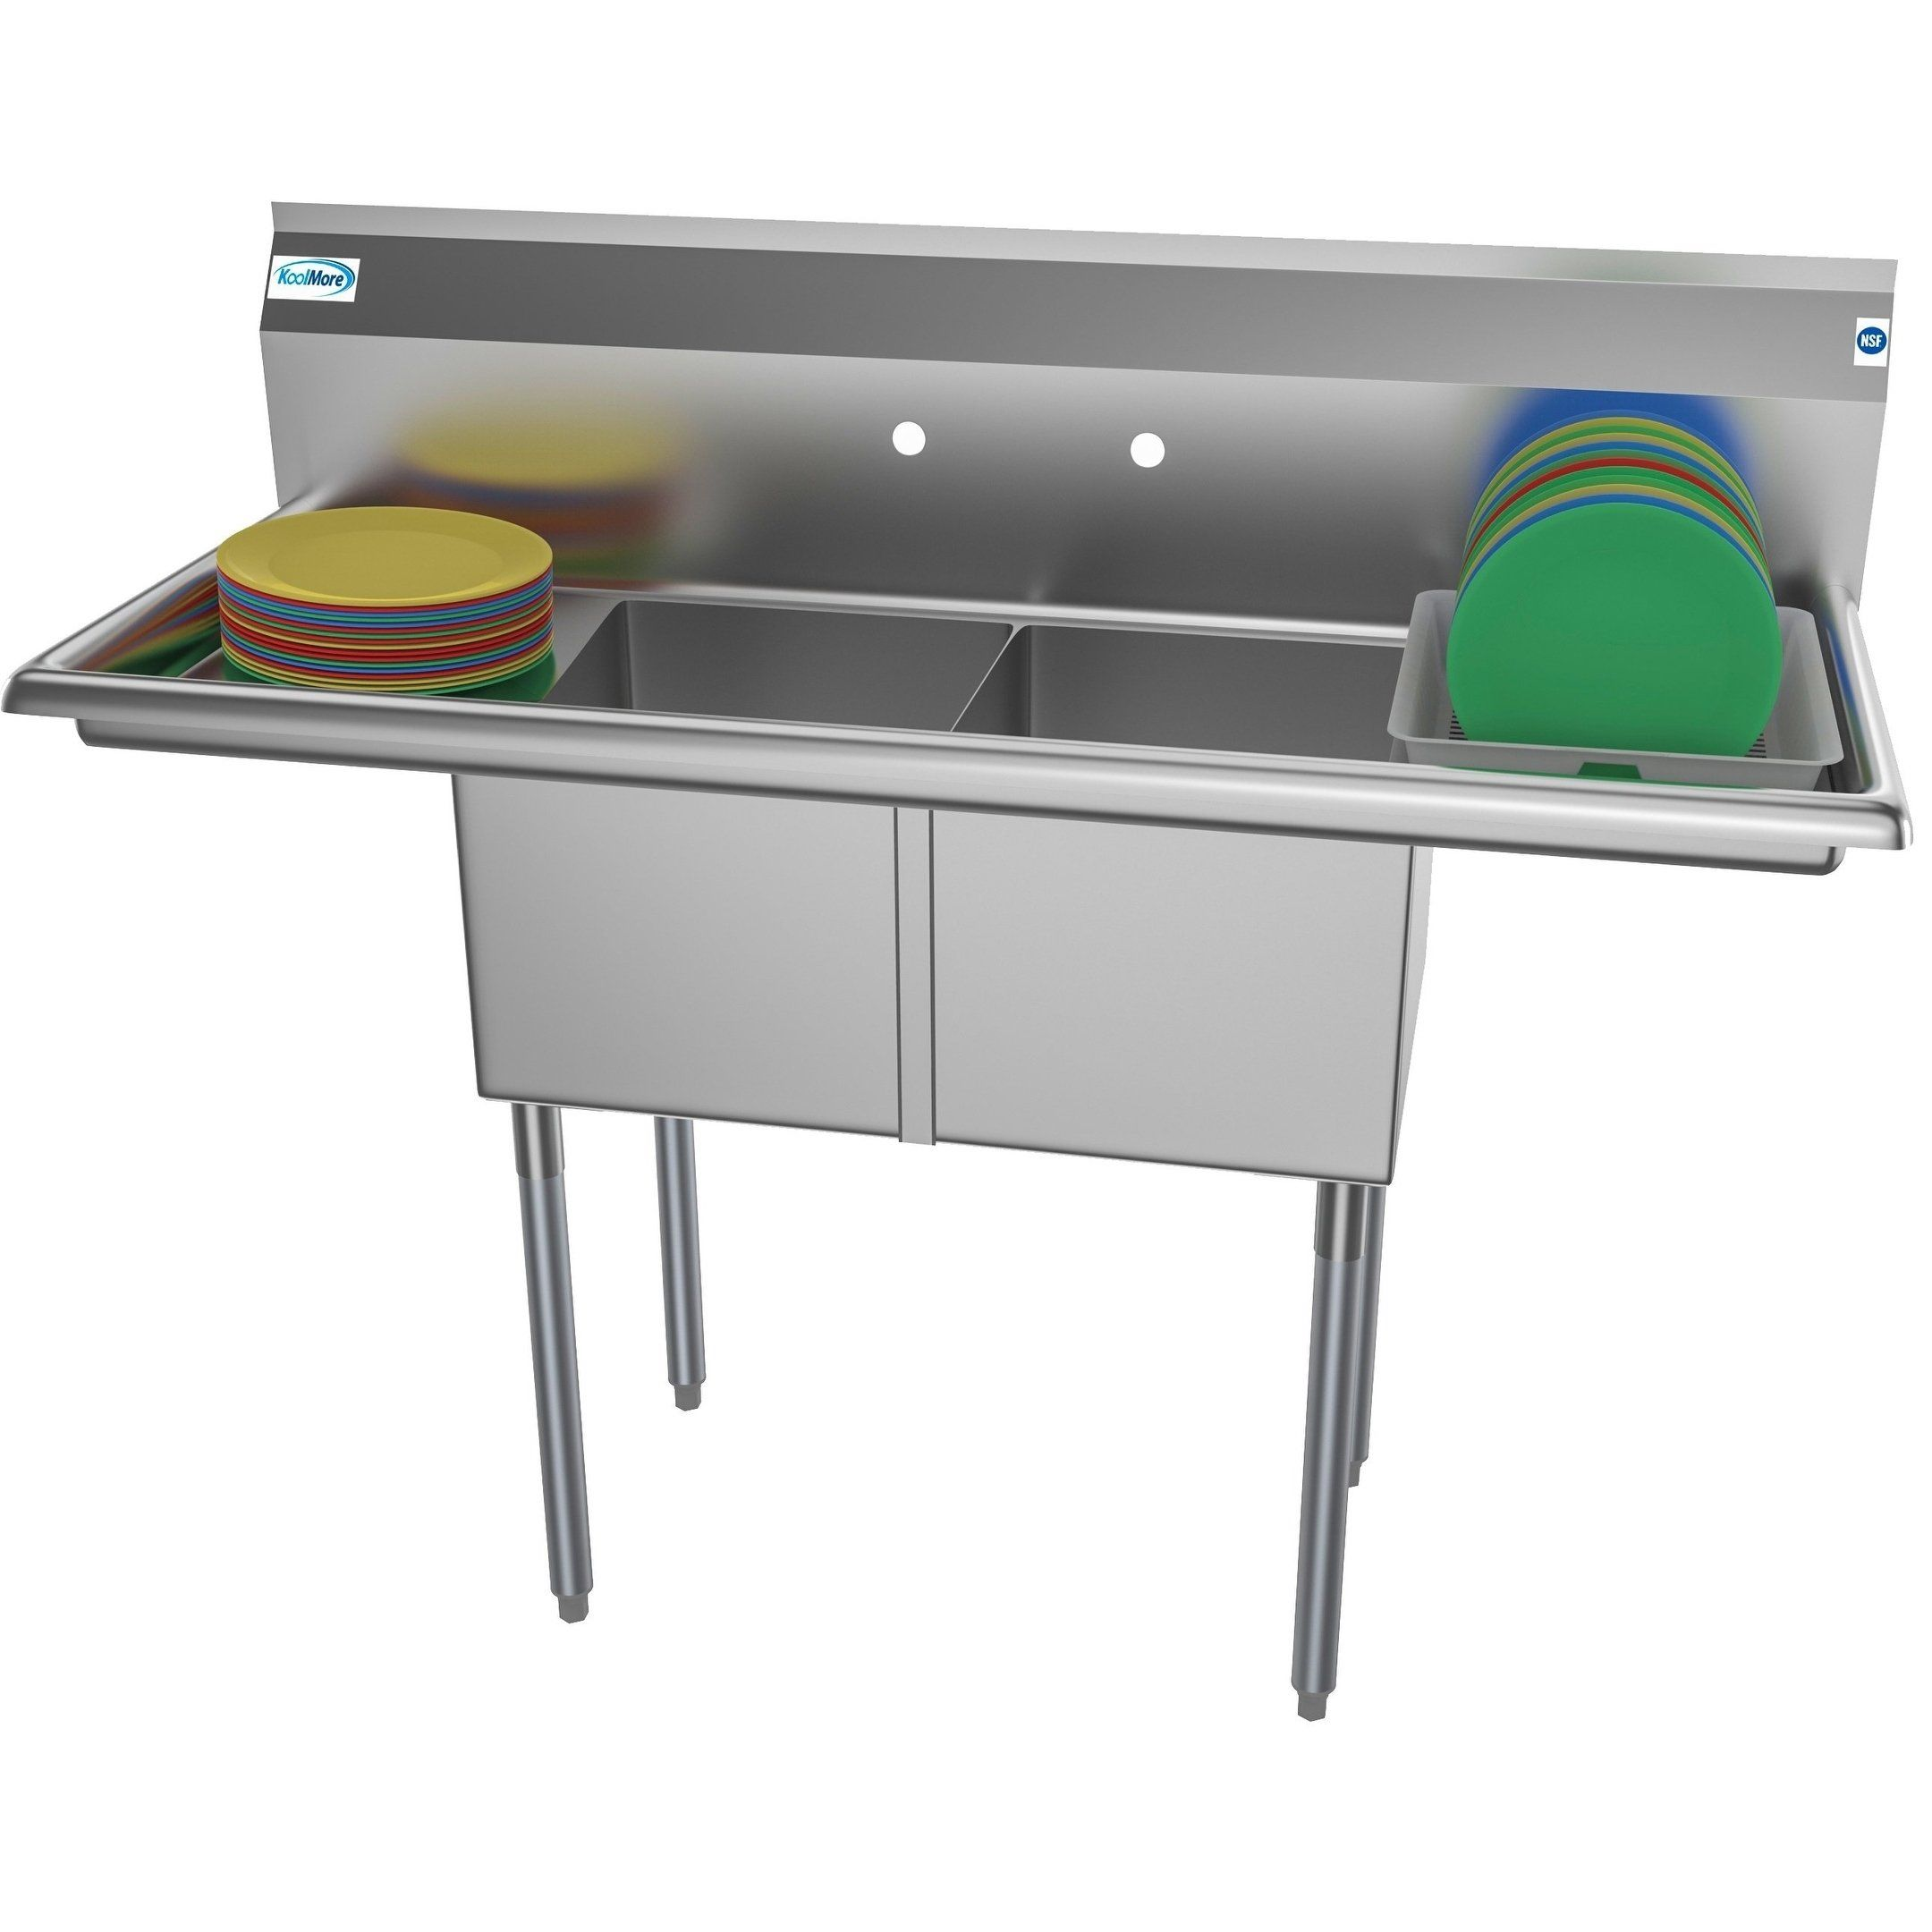 20+ Two compartment farmhouse sink model